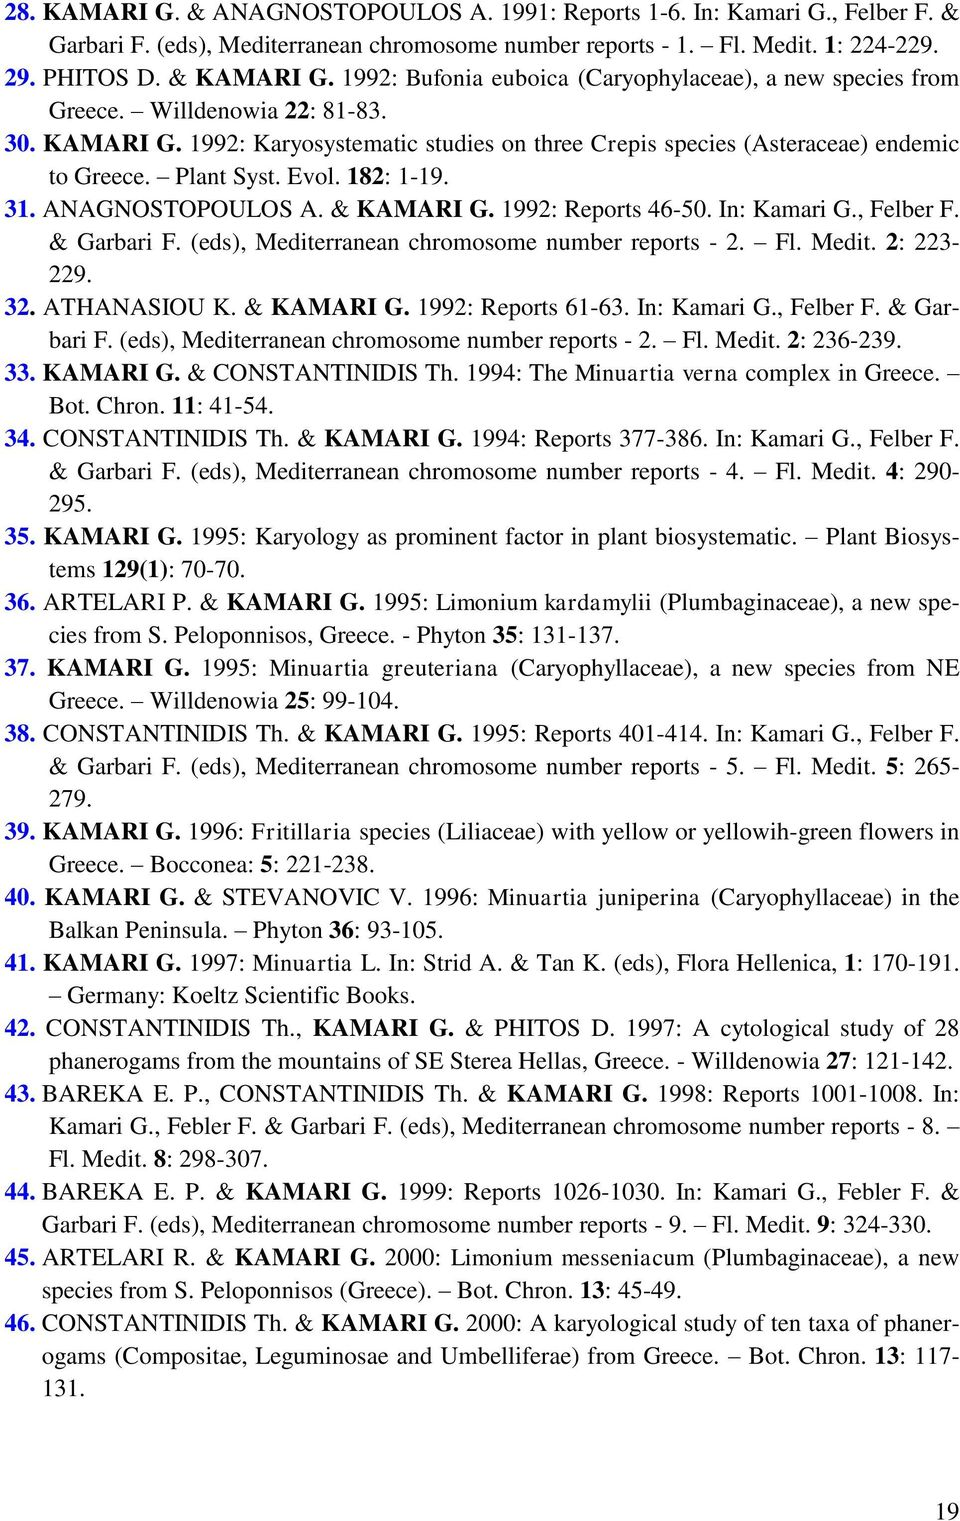 Plant Syst. Evol. 182: 1-19. 31. ANAGNOSTOPOULOS A. & KAMARI G. 1992: Reports 46-50. In: Kamari G., Felber F. & Garbari F. (eds), Mediterranean chromosome number reports - 2. Fl. Medit. 2: 223-229.